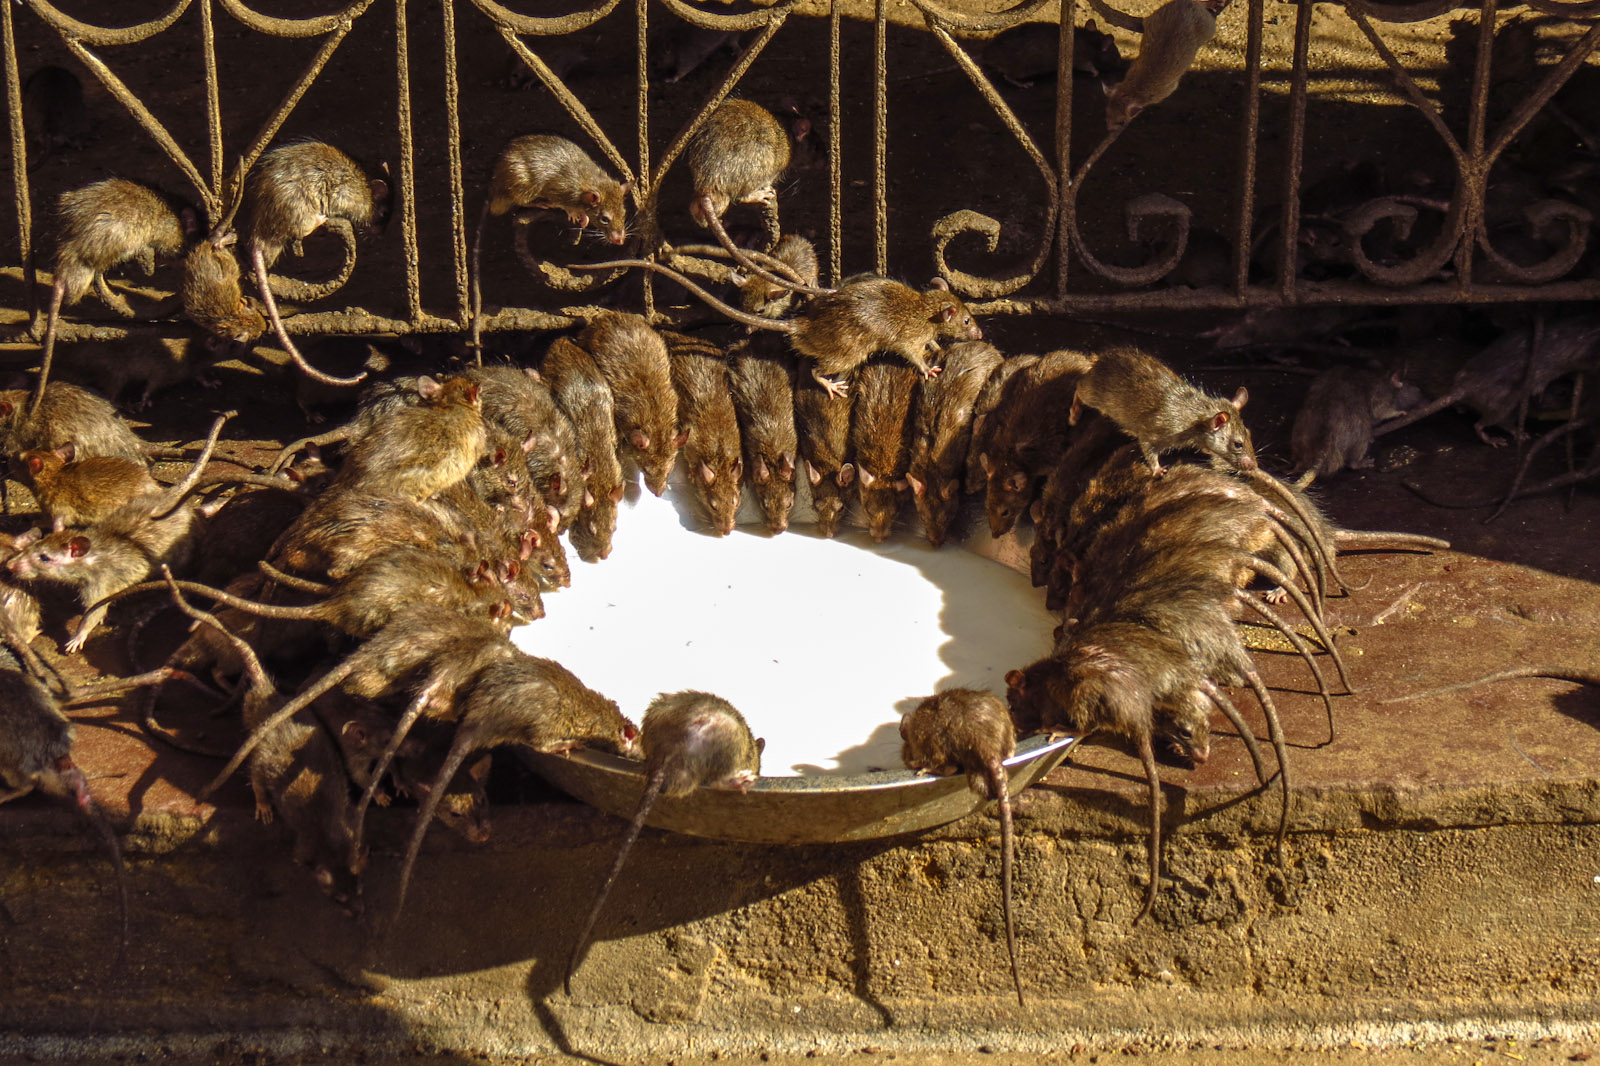 Bikaner India  city pictures gallery : Bikaner India Rat Temple Bikaner Rat Temple Feedling